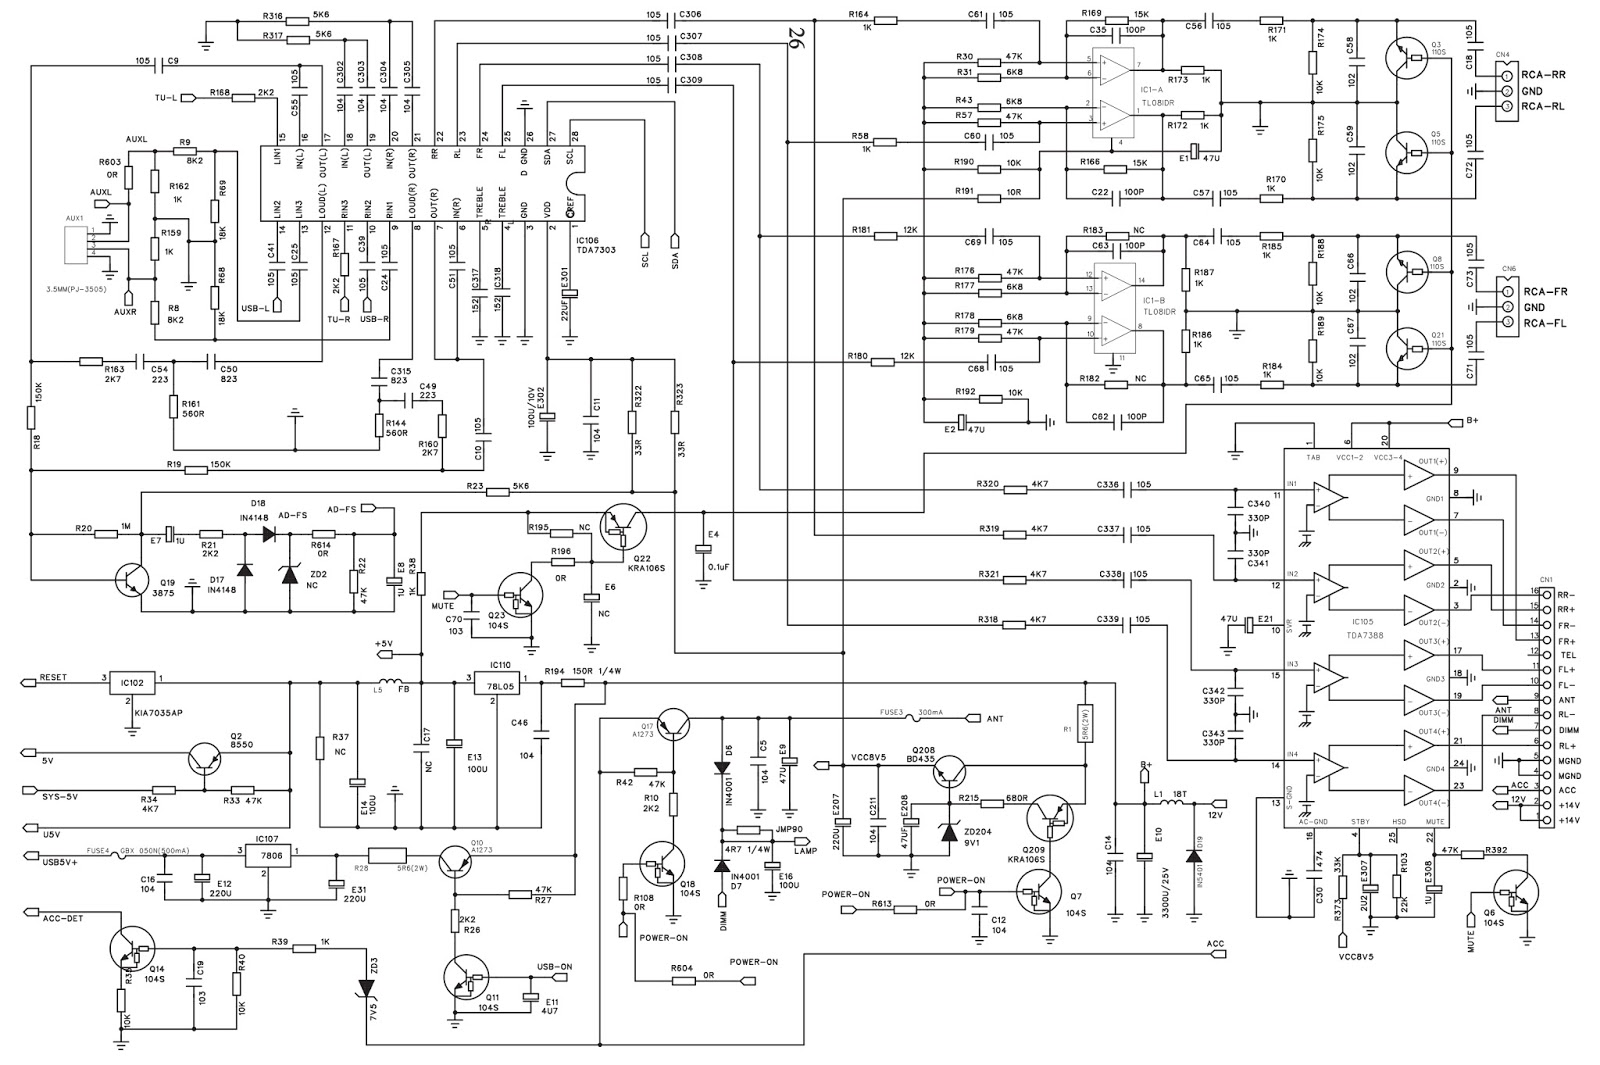 h-buster hbdu-3200 - car audio system - schematic diagram